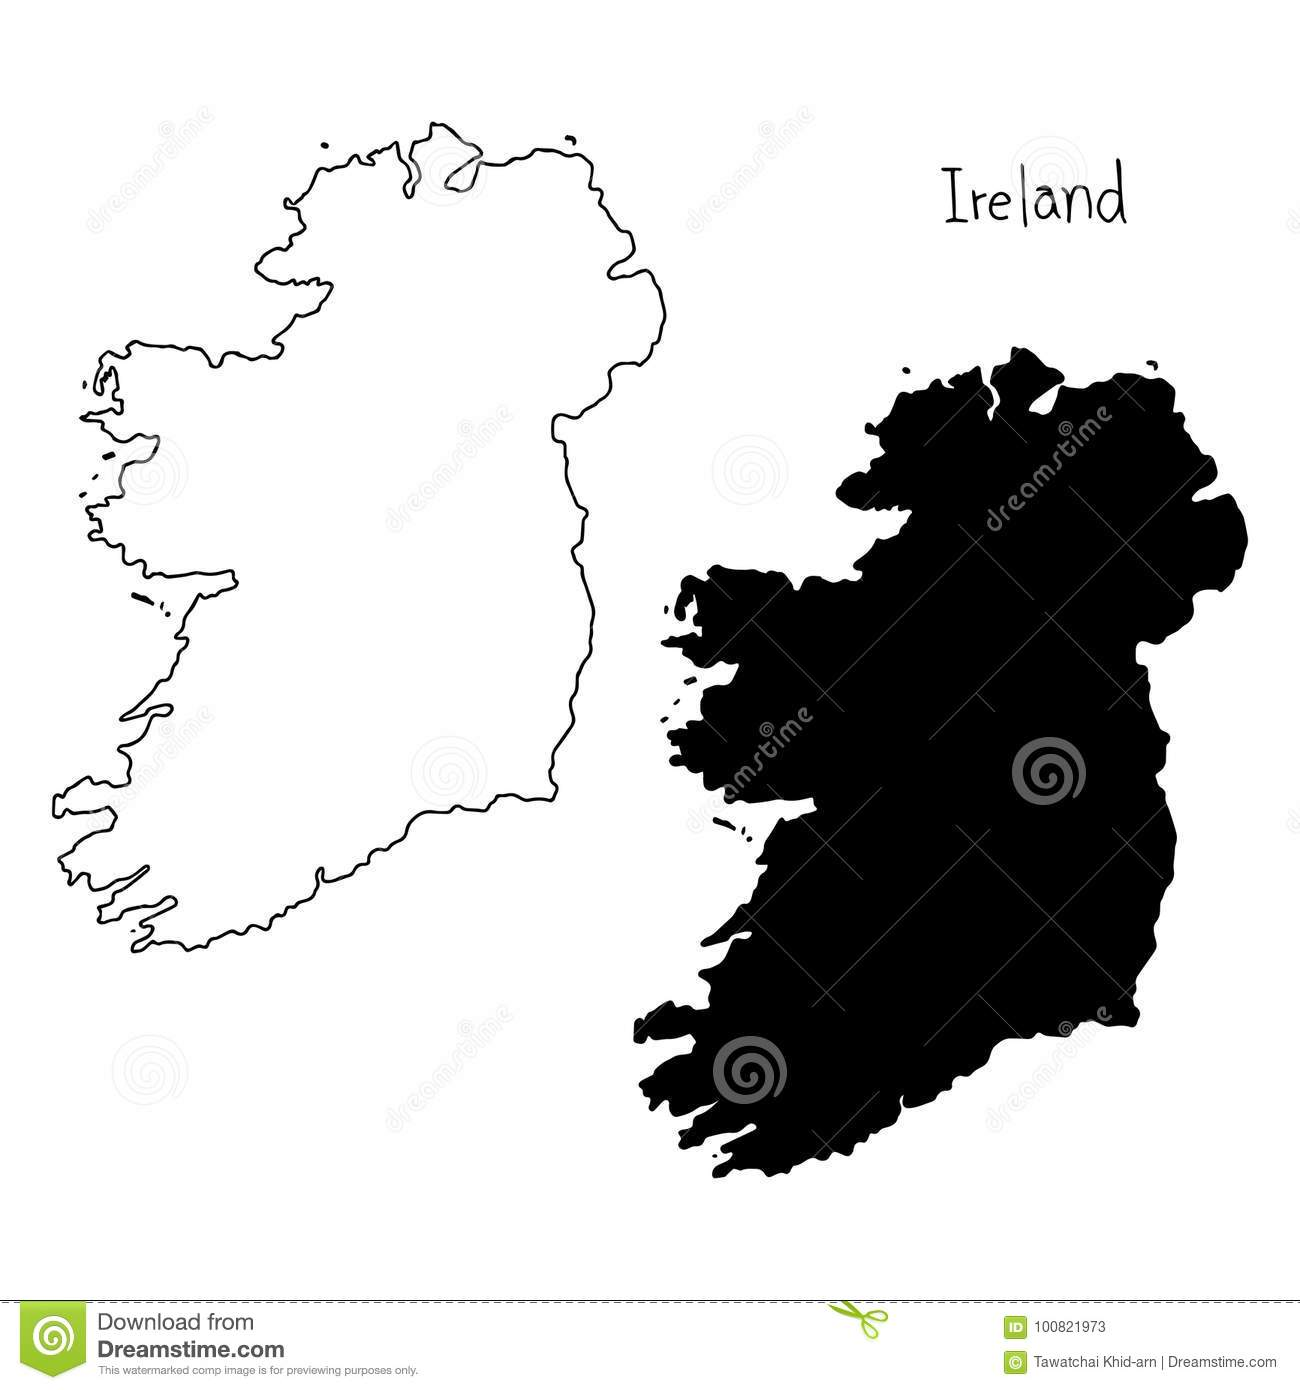 Outline And Silhouette Map Of Ireland - Vector Illustration ... on map of netherlands, map of european countries, map of japan, map of britain, map of british isles, map of dublin, map of skellig islands, map of denmark, map of united kingdom, map of ring of kerry, map of united states, map of prince edward island, map of eastern hemisphere, map of yugoslavia, map of northeast us, map of sweden, map of scotland, map of london, map of hong kong, map of philippines,